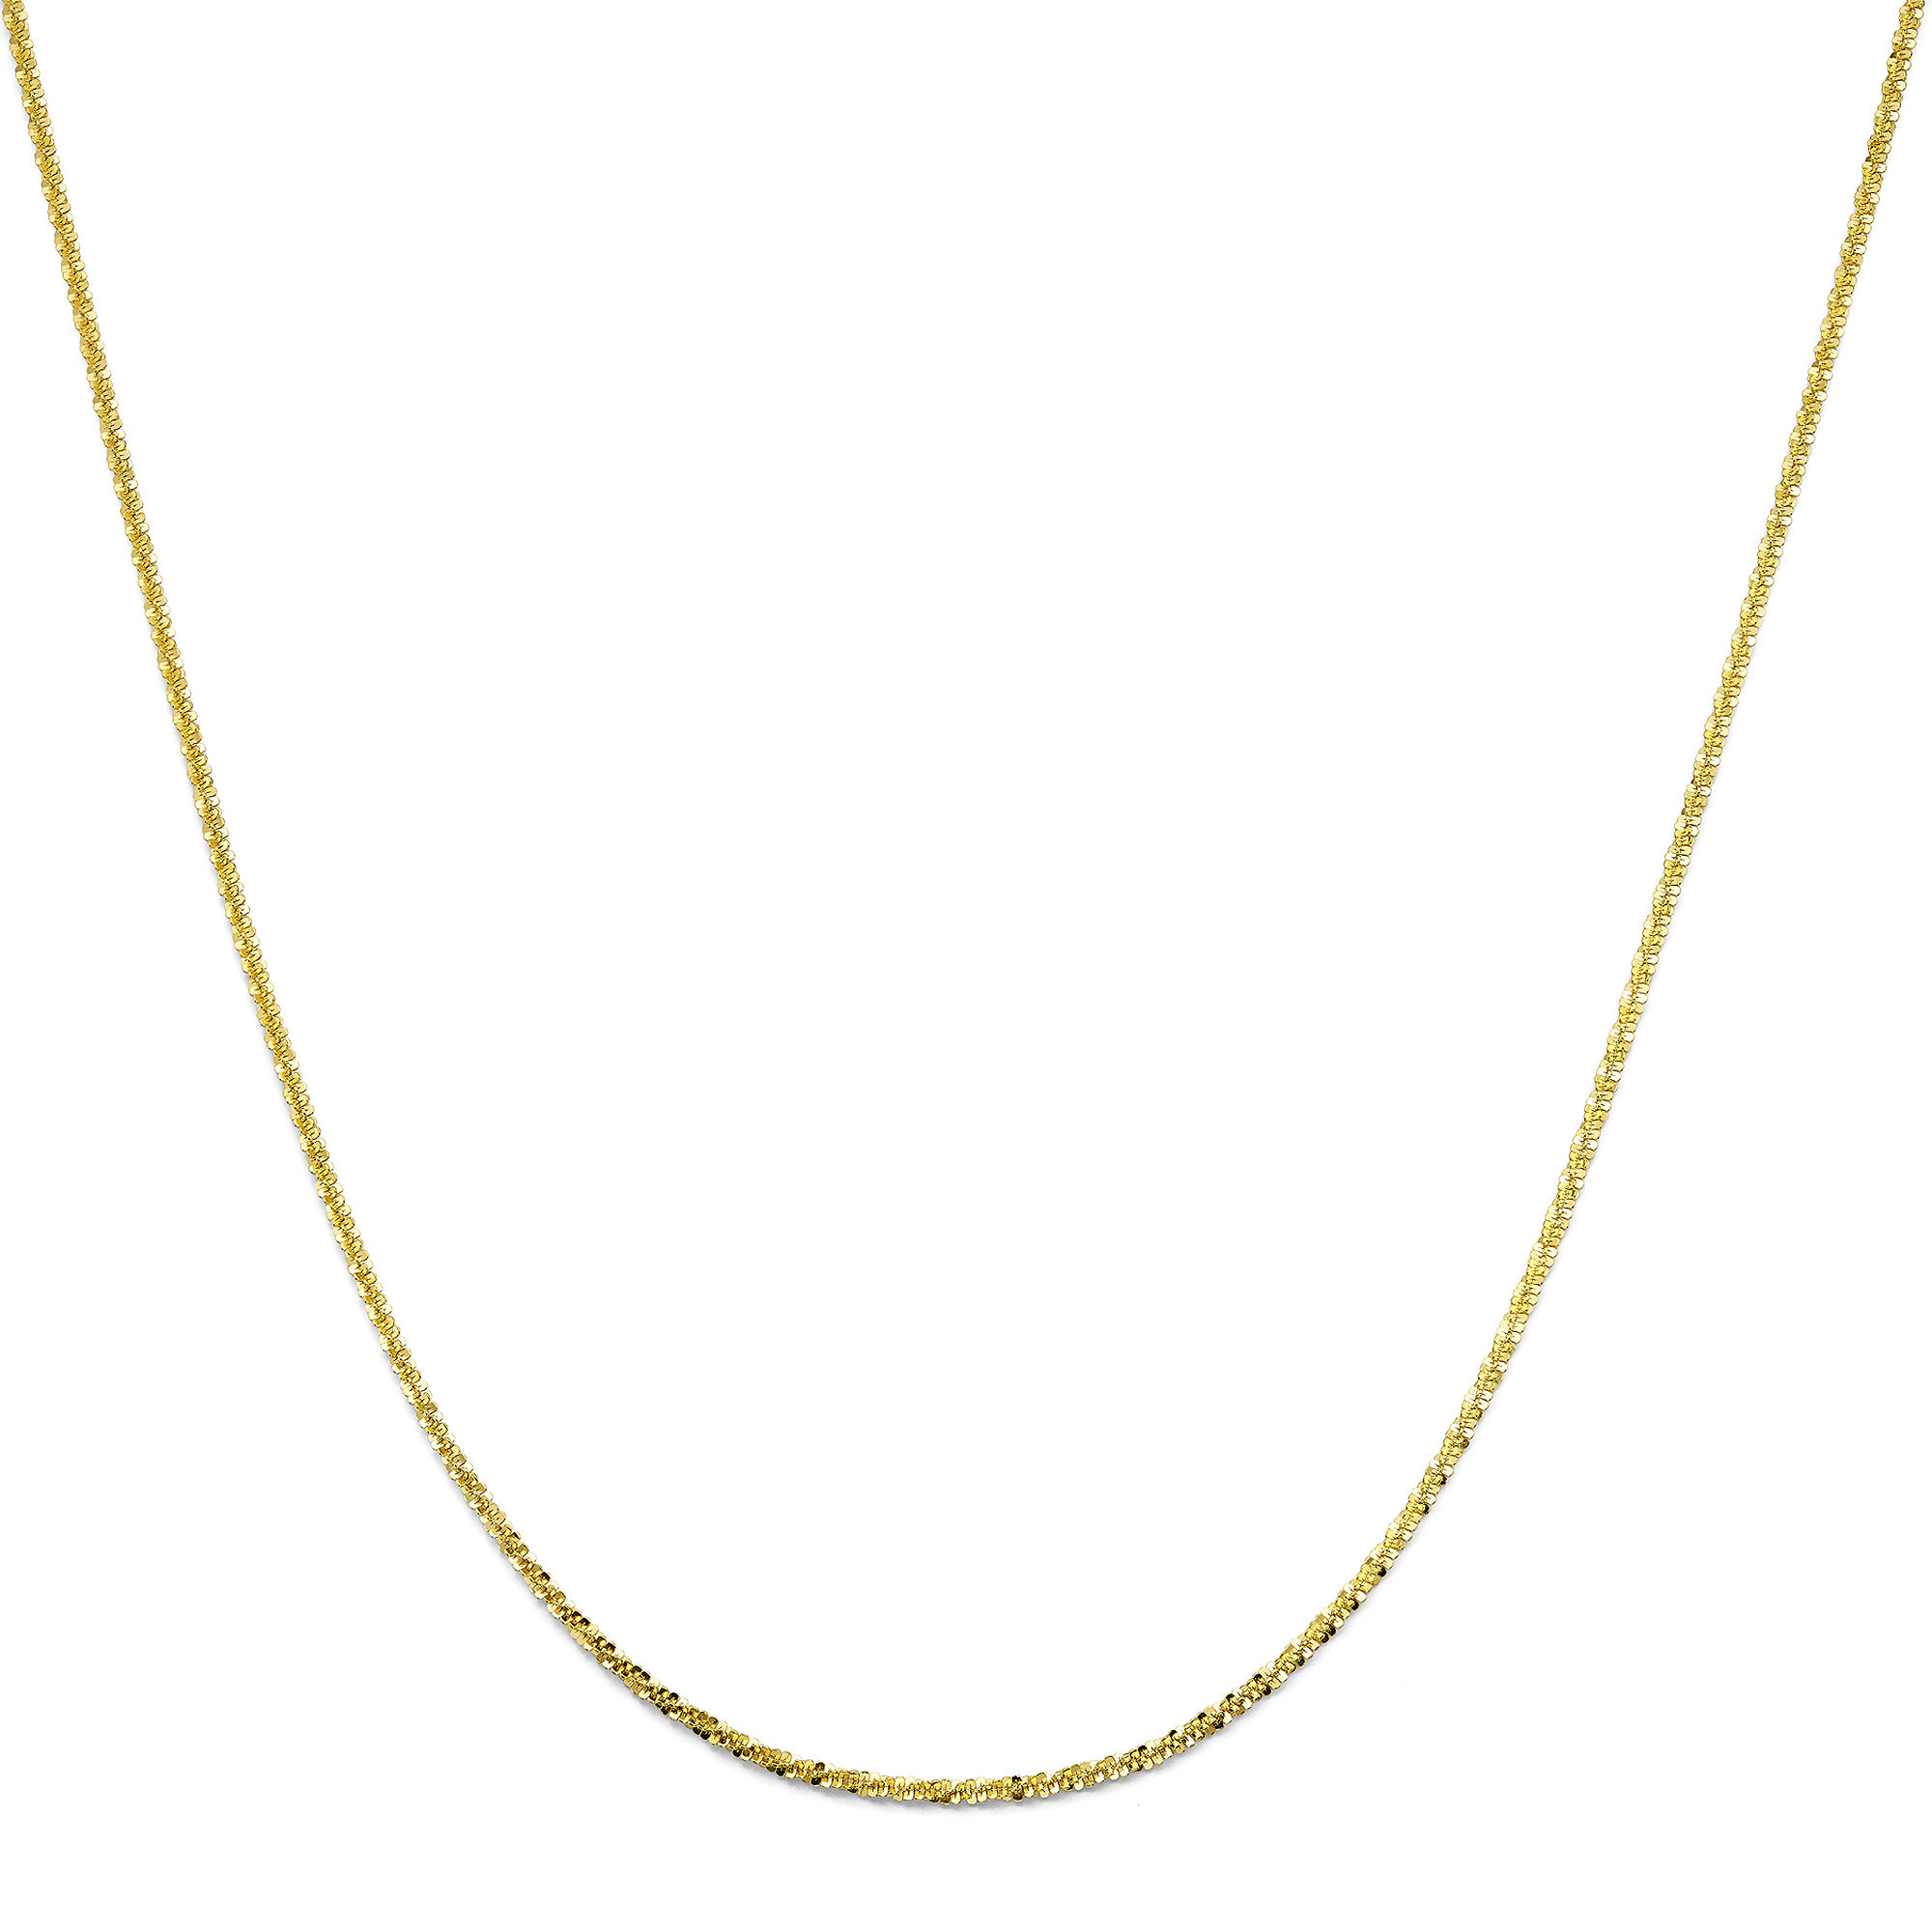 Made in Italy 18K Gold Over Sterling Silver Criss-Cross Chain Necklace